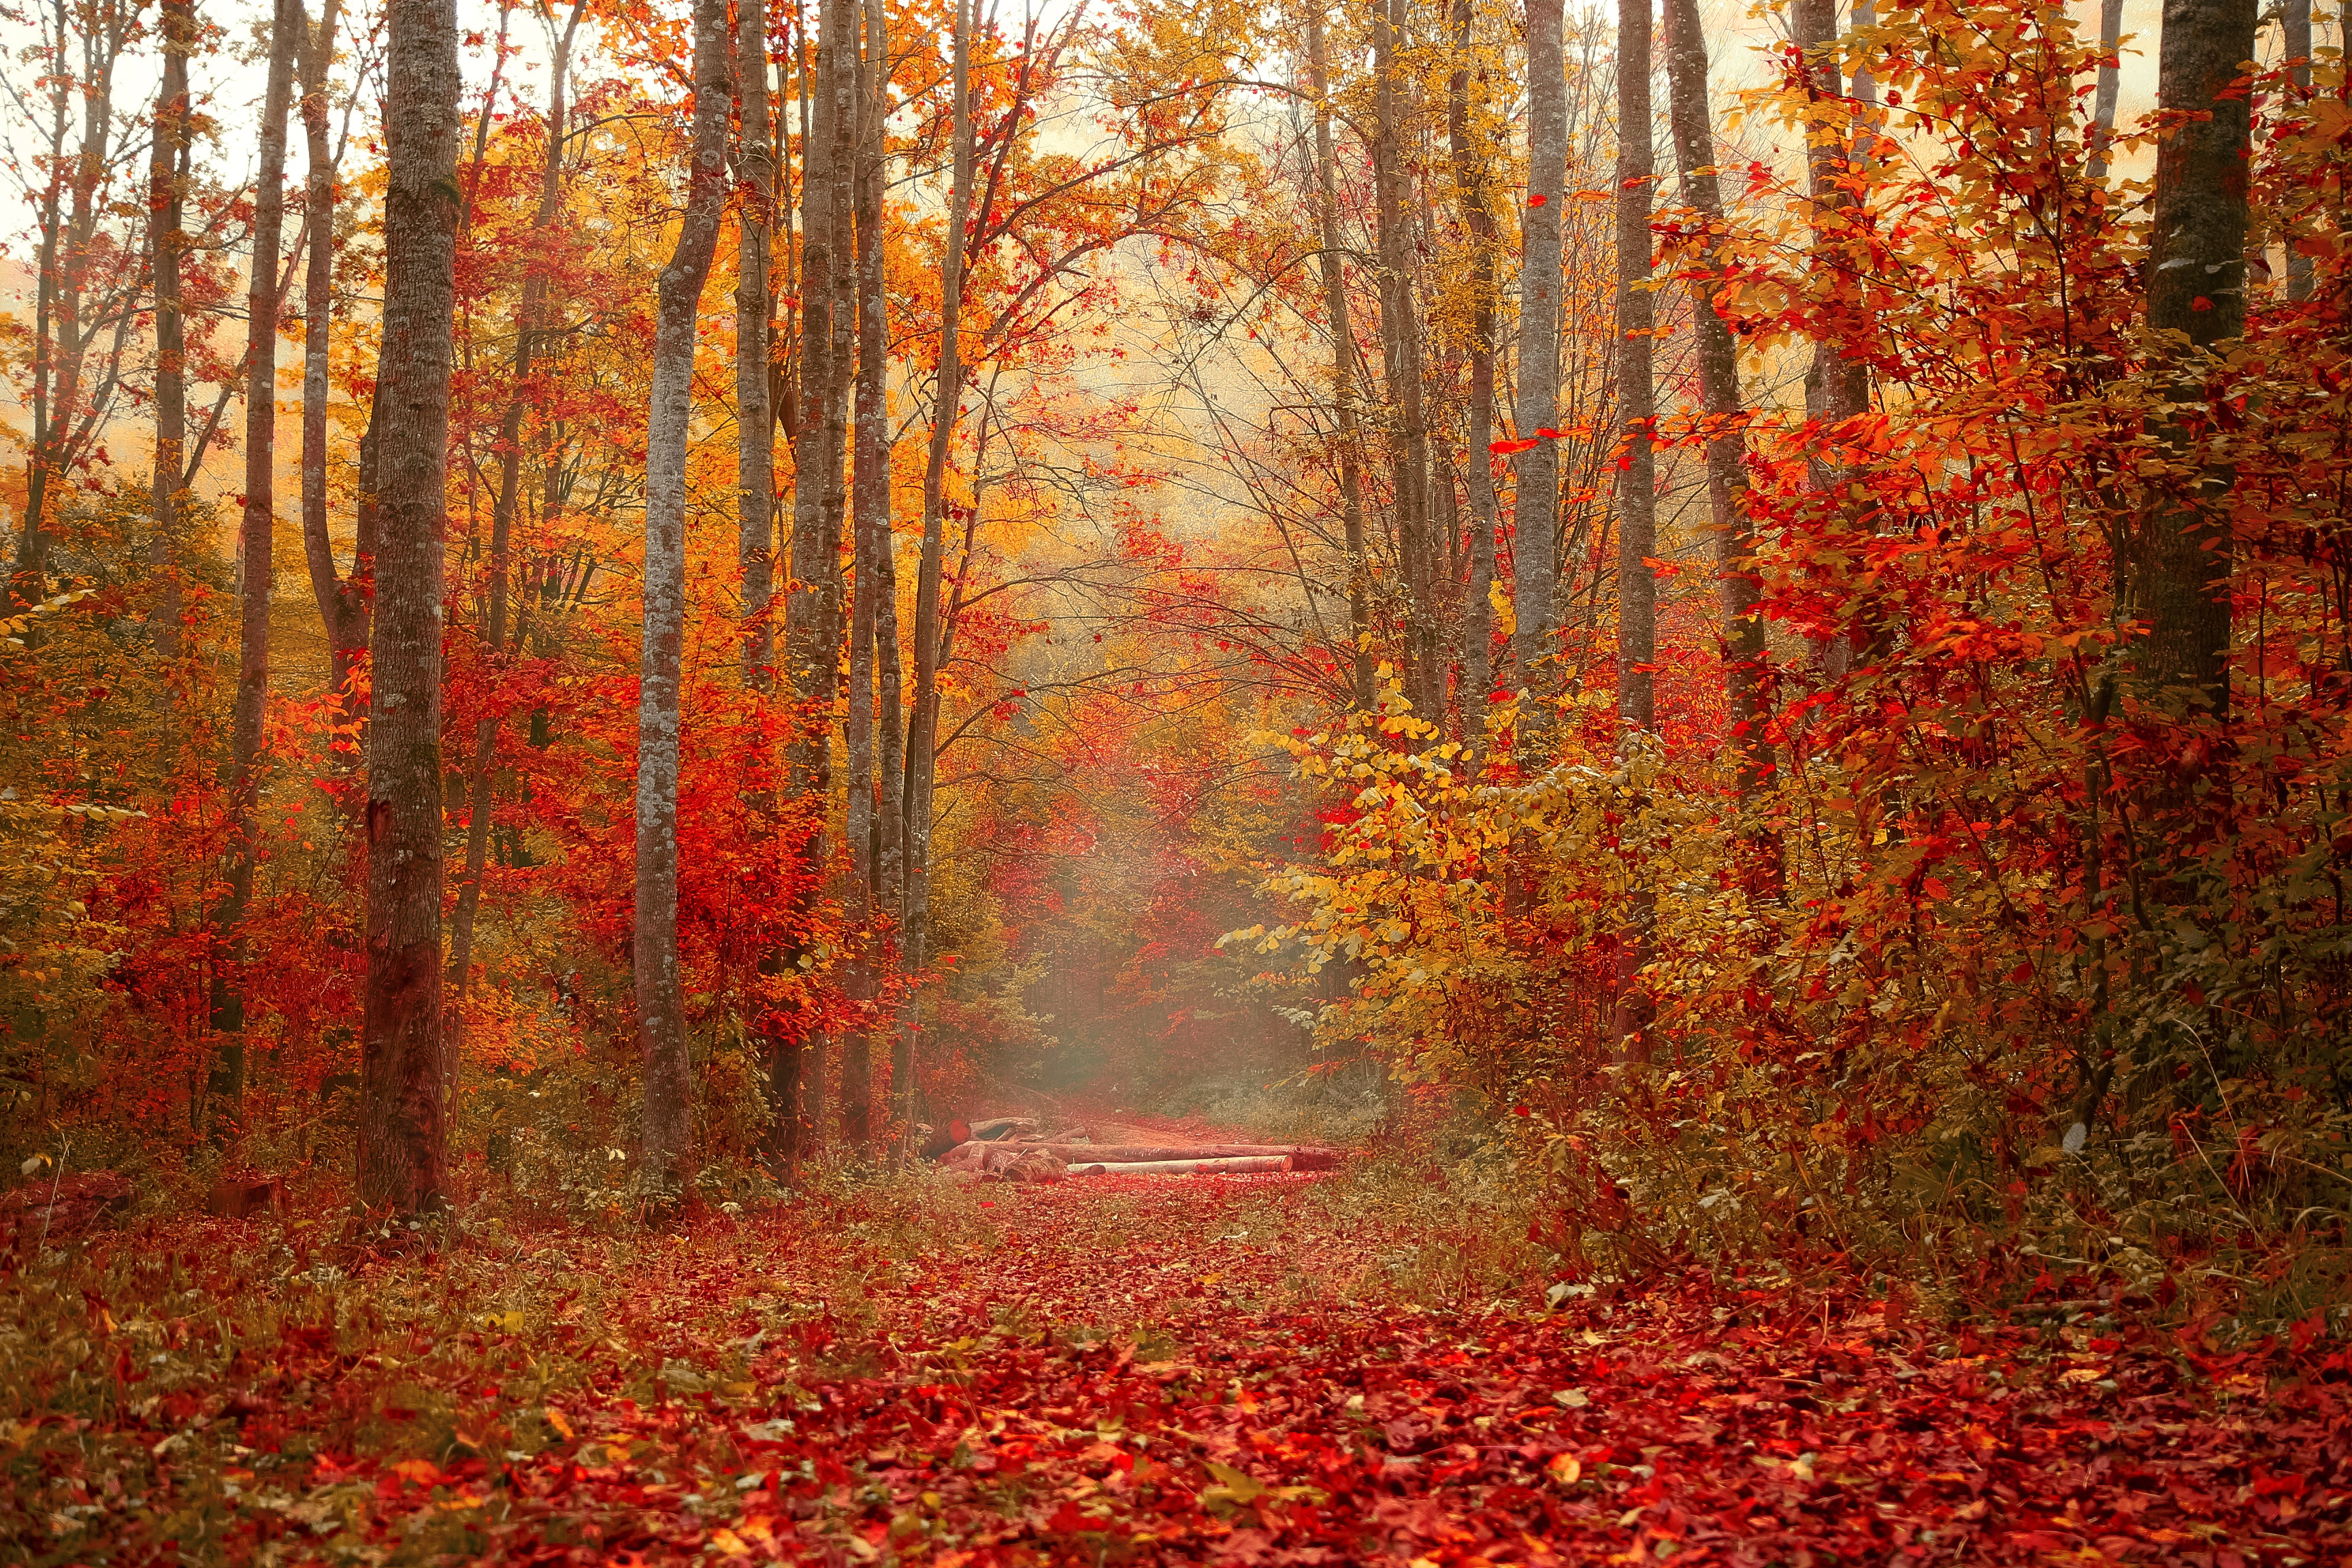 155459 download wallpaper Nature, Autumn, Forest, Foliage, Trees, Colorful, Colourful screensavers and pictures for free